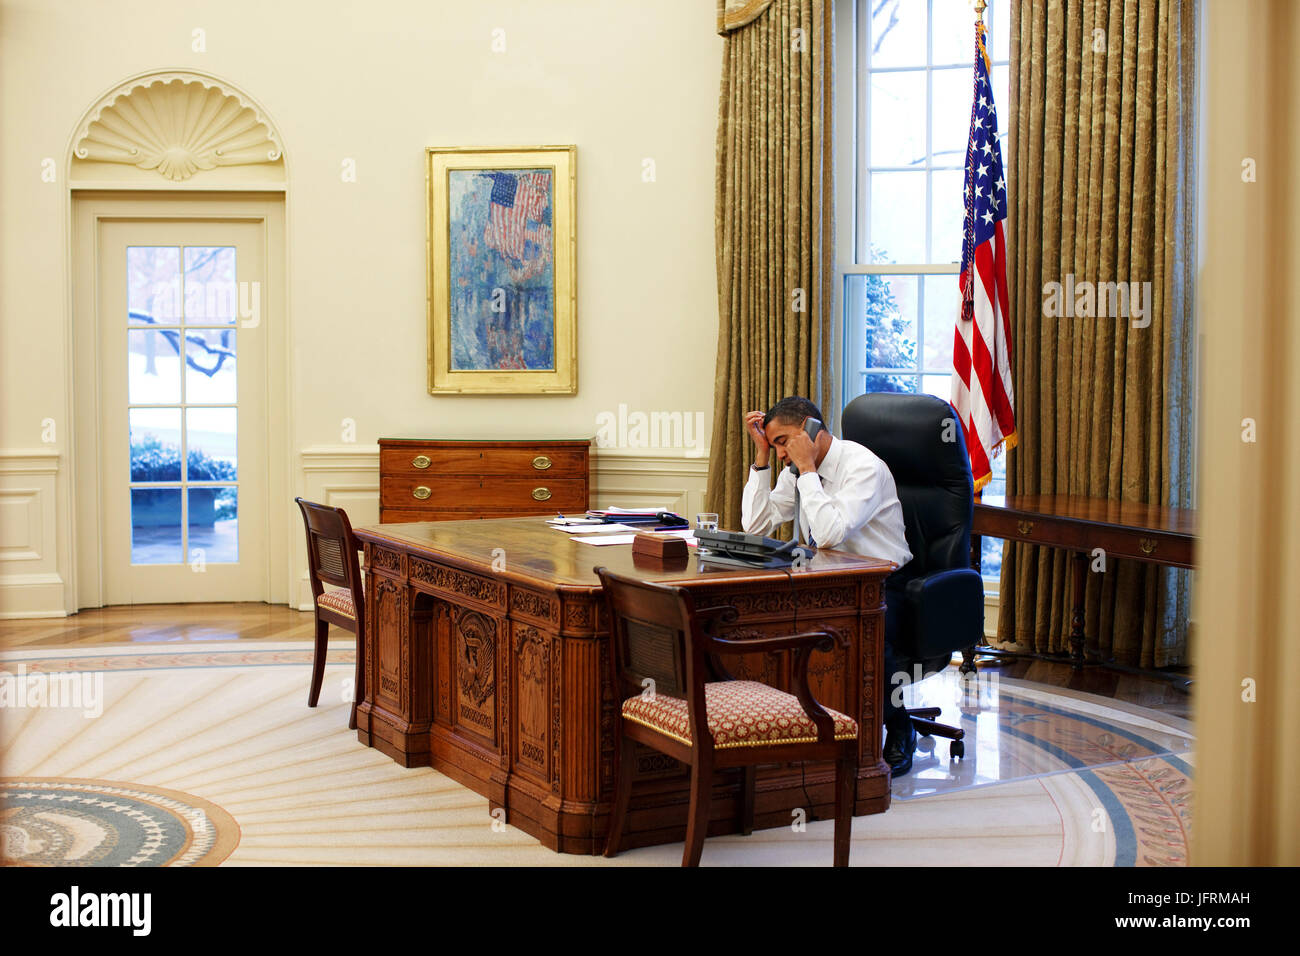 President Barack Obama in the Oval Office 1/28/09. Official White House Photo by Pete Souza - Stock Image